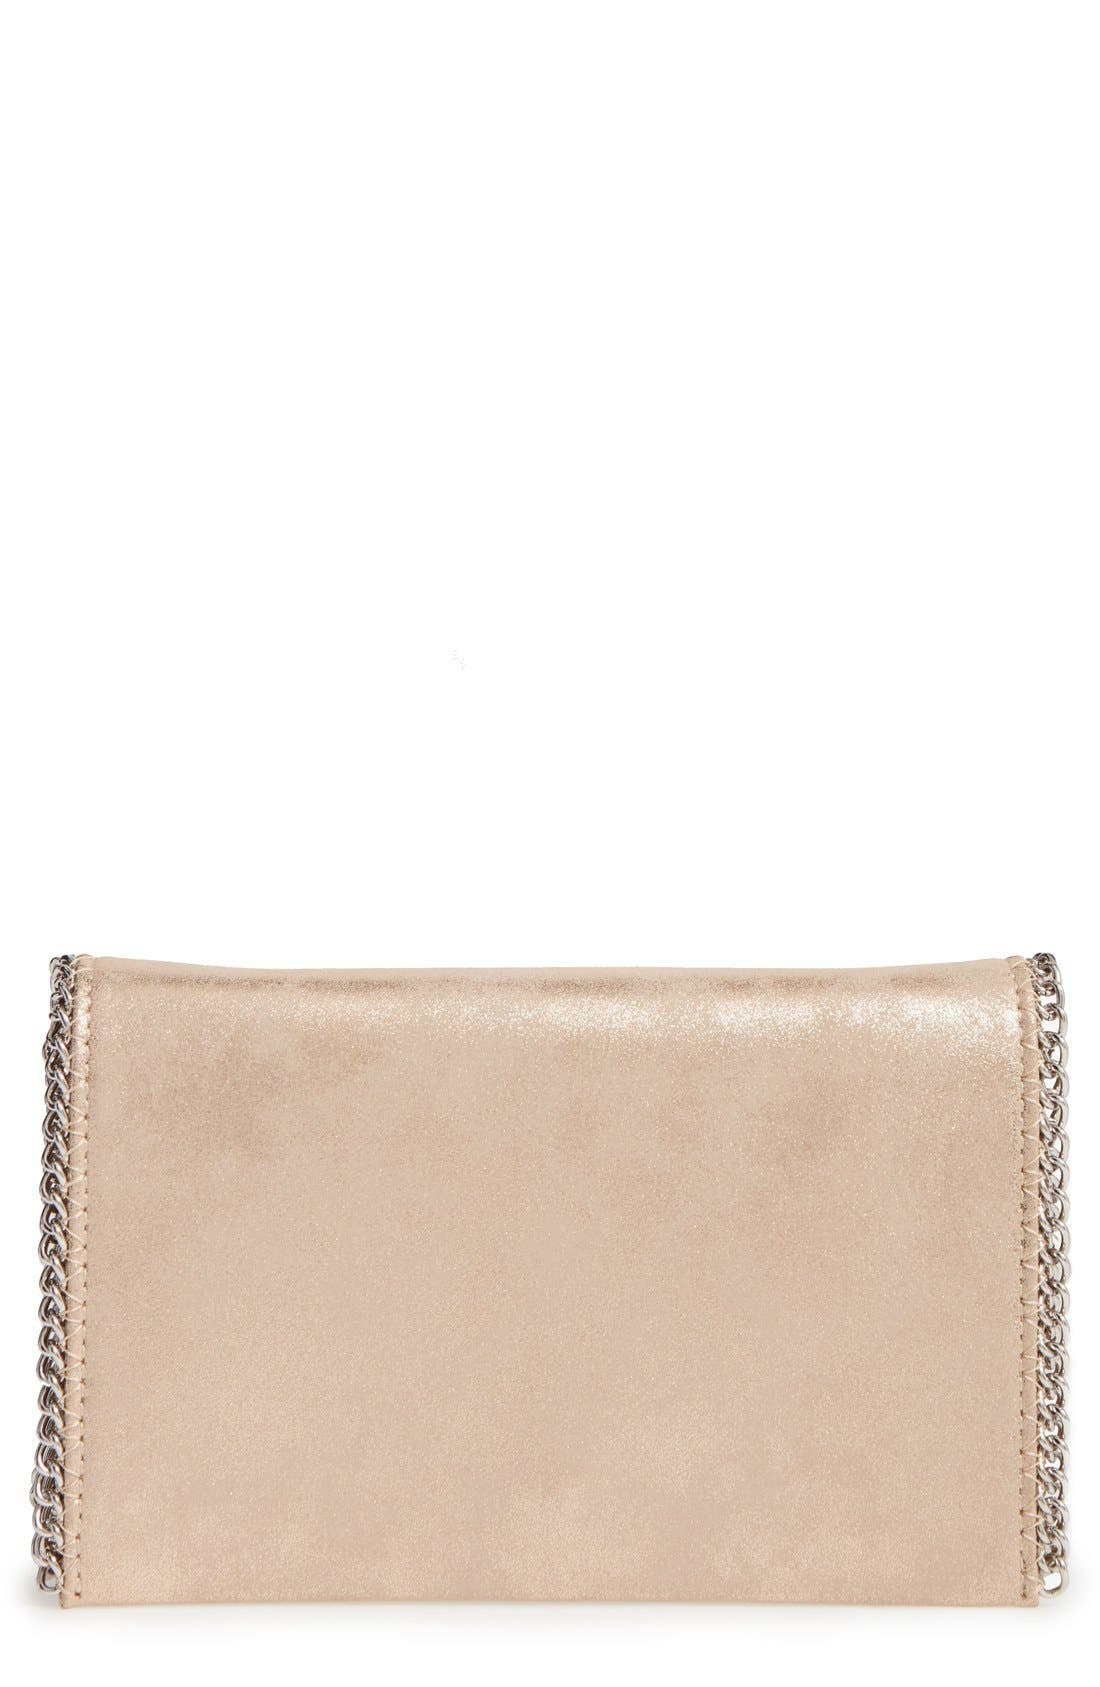 Alternate Image 1 Selected - Chelsea28 Faux Leather Clutch